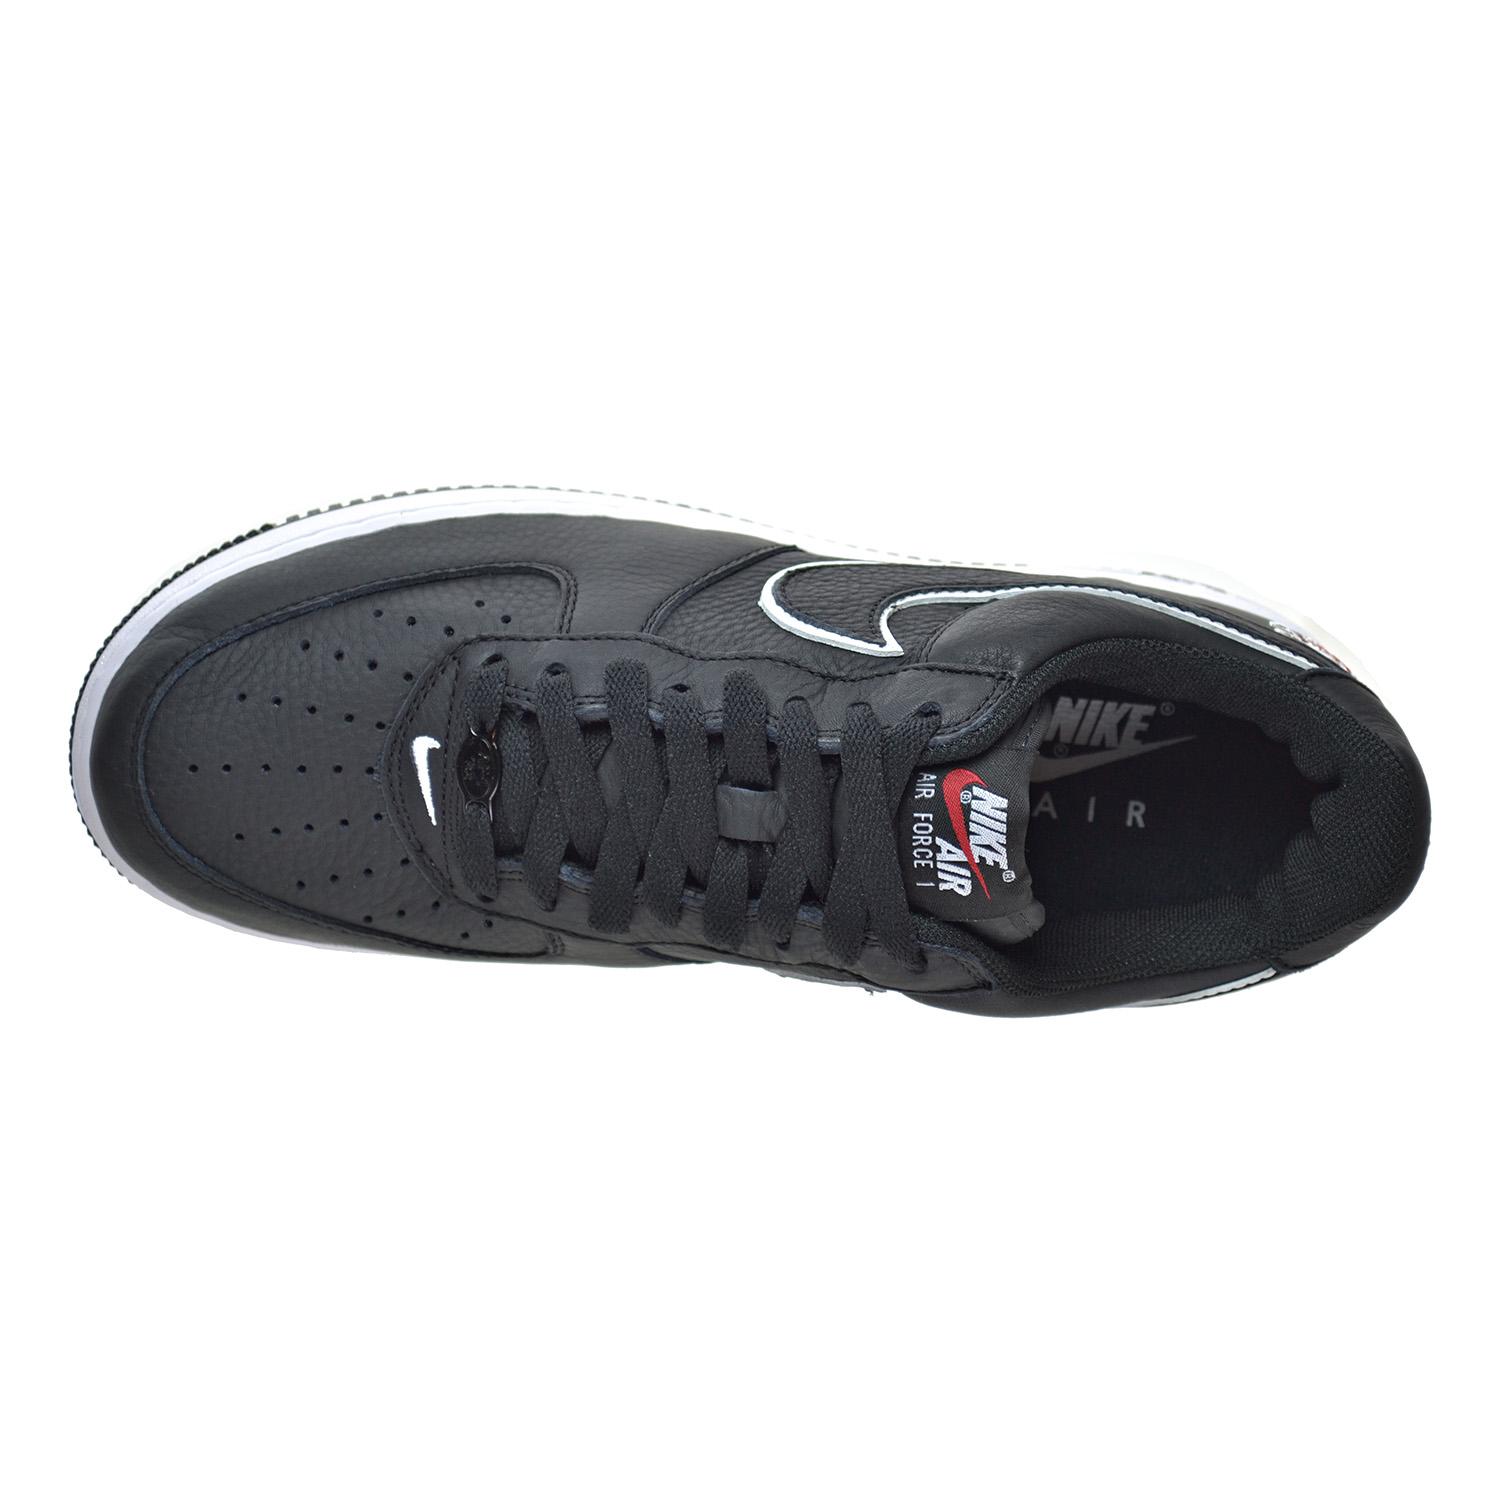 info for 8d5f3 93d0d Nike - Mens Nike Air Force 1 Low NYC Kith Black White Red 845053-002 -  Walmart.com